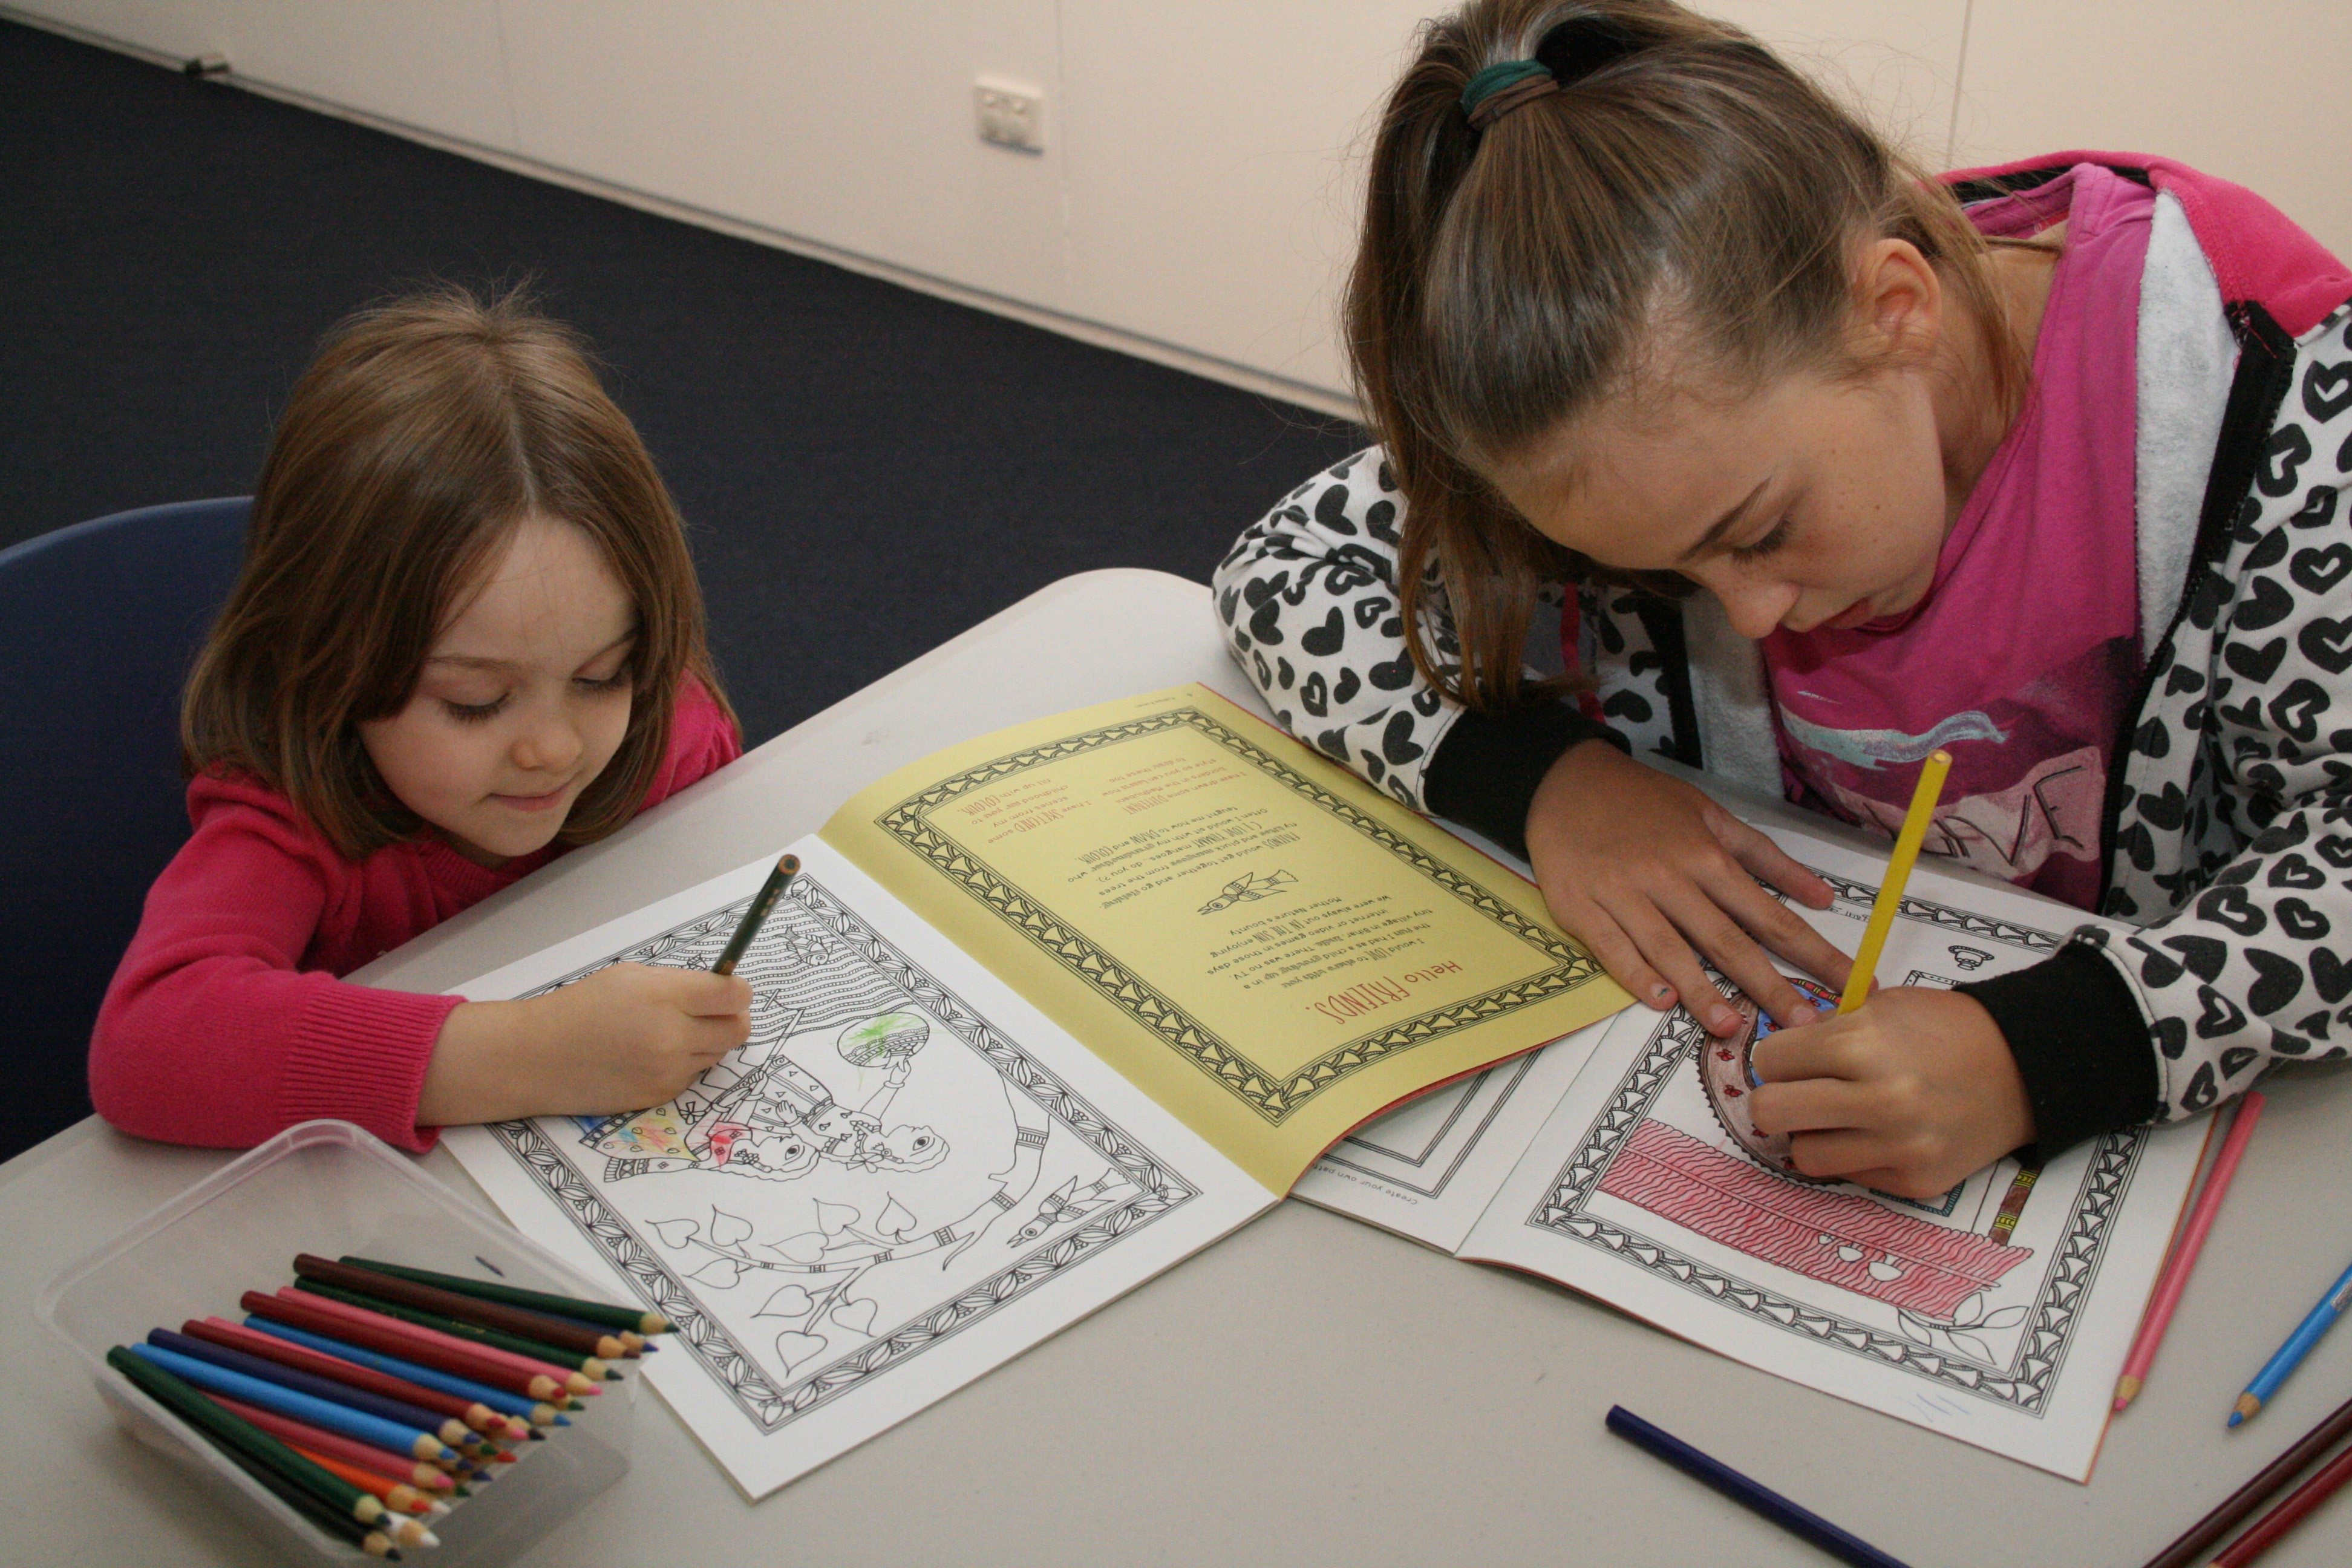 Participants enjoying activities as part of the APT8 Kids on Tour Regional Touring Program.  Image courtesy: Toowoomba Regional Art Gallery